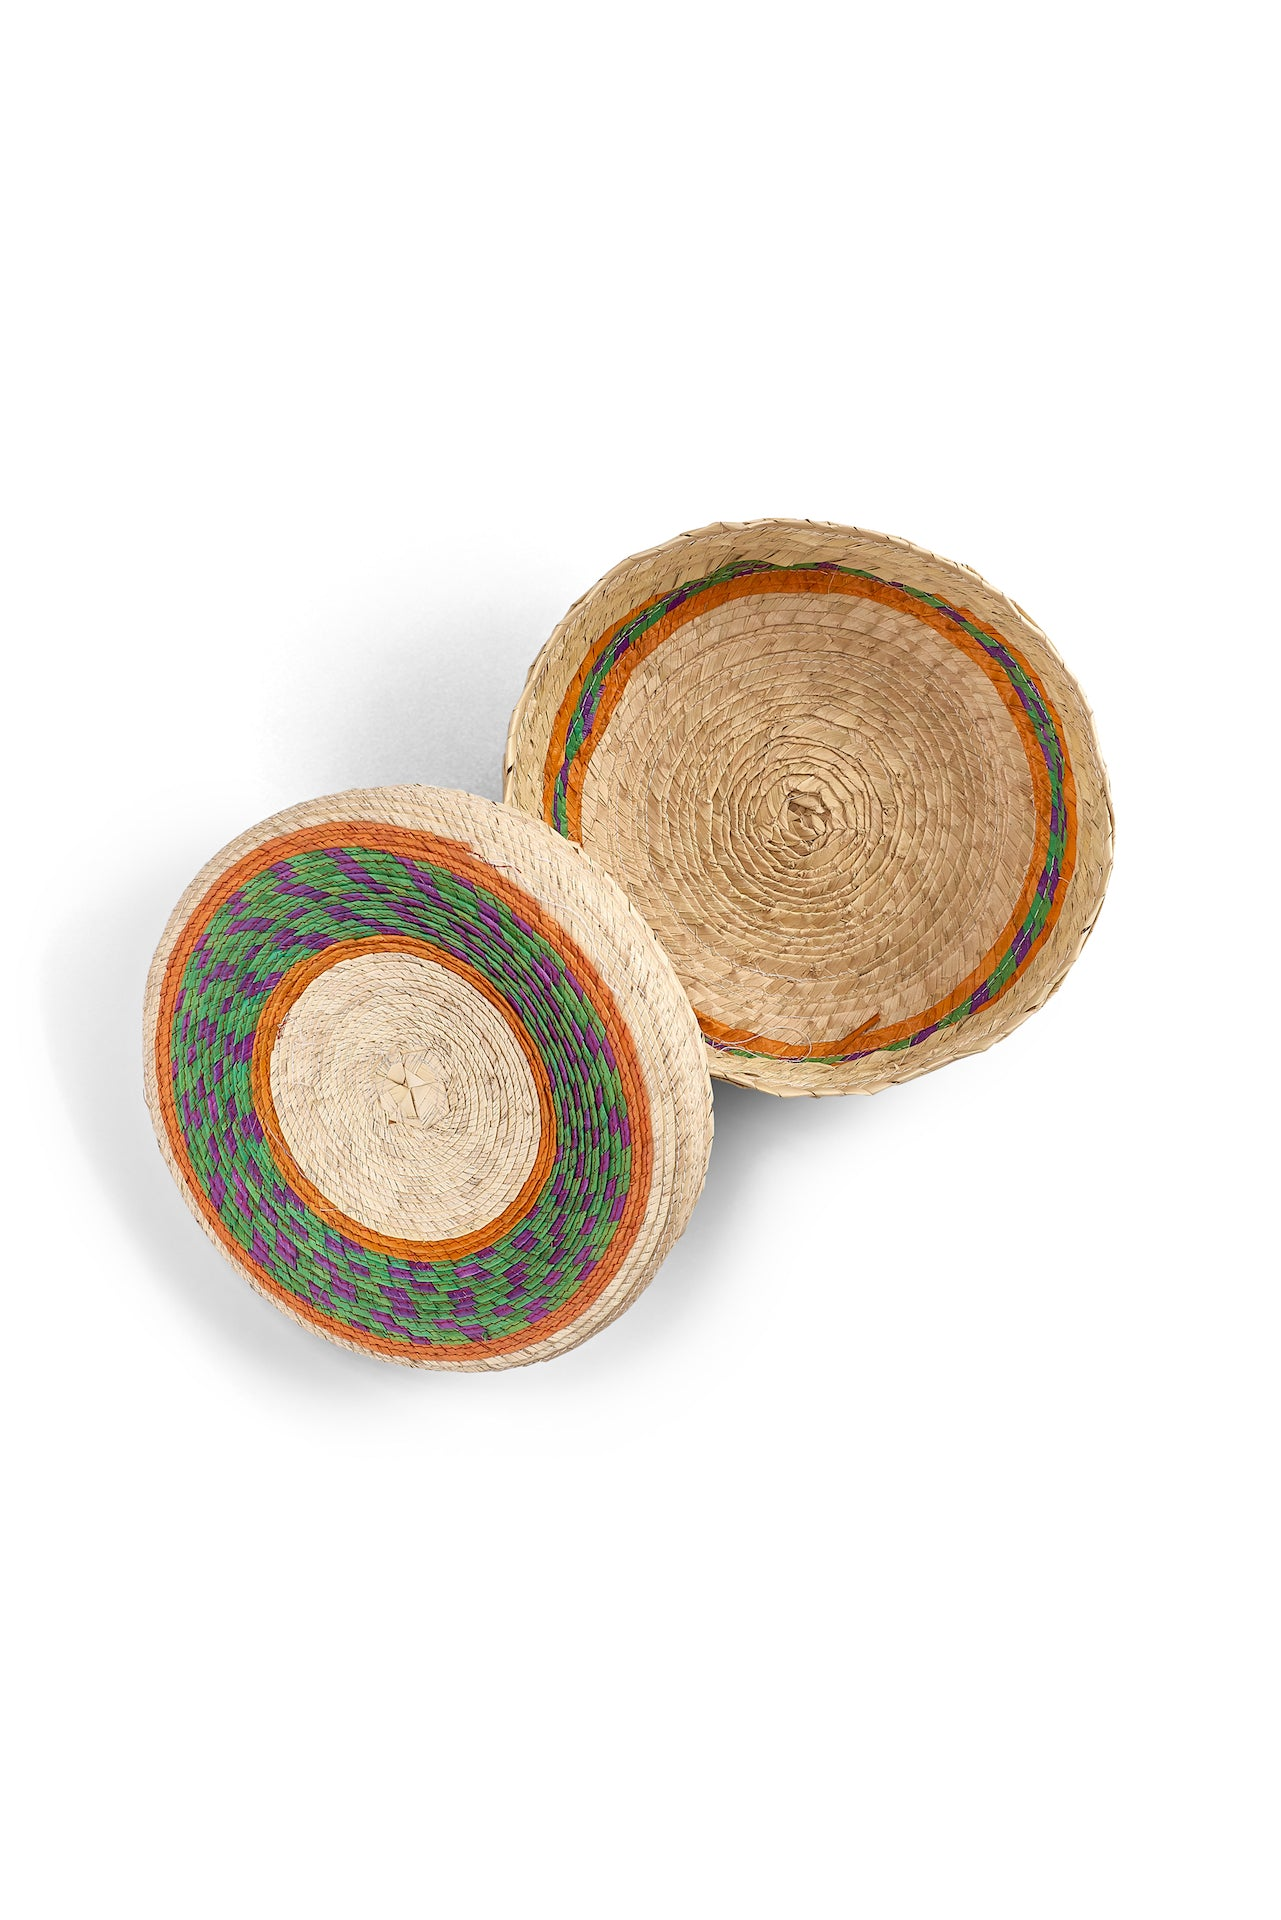 Handmade Lidded Mexican Baskets